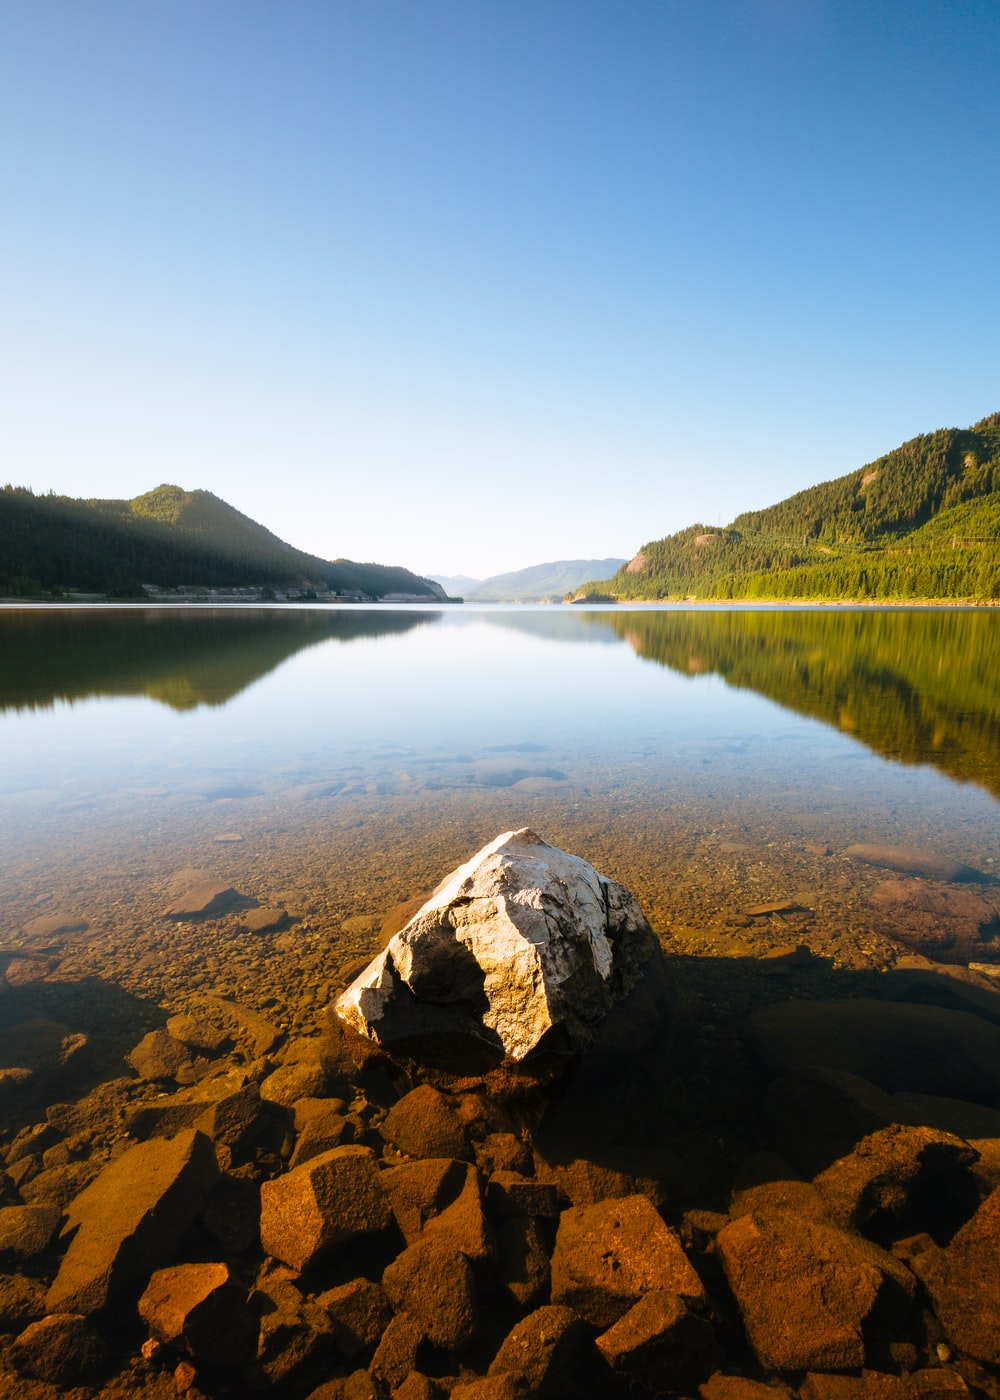 photo of calm body of water between mountain